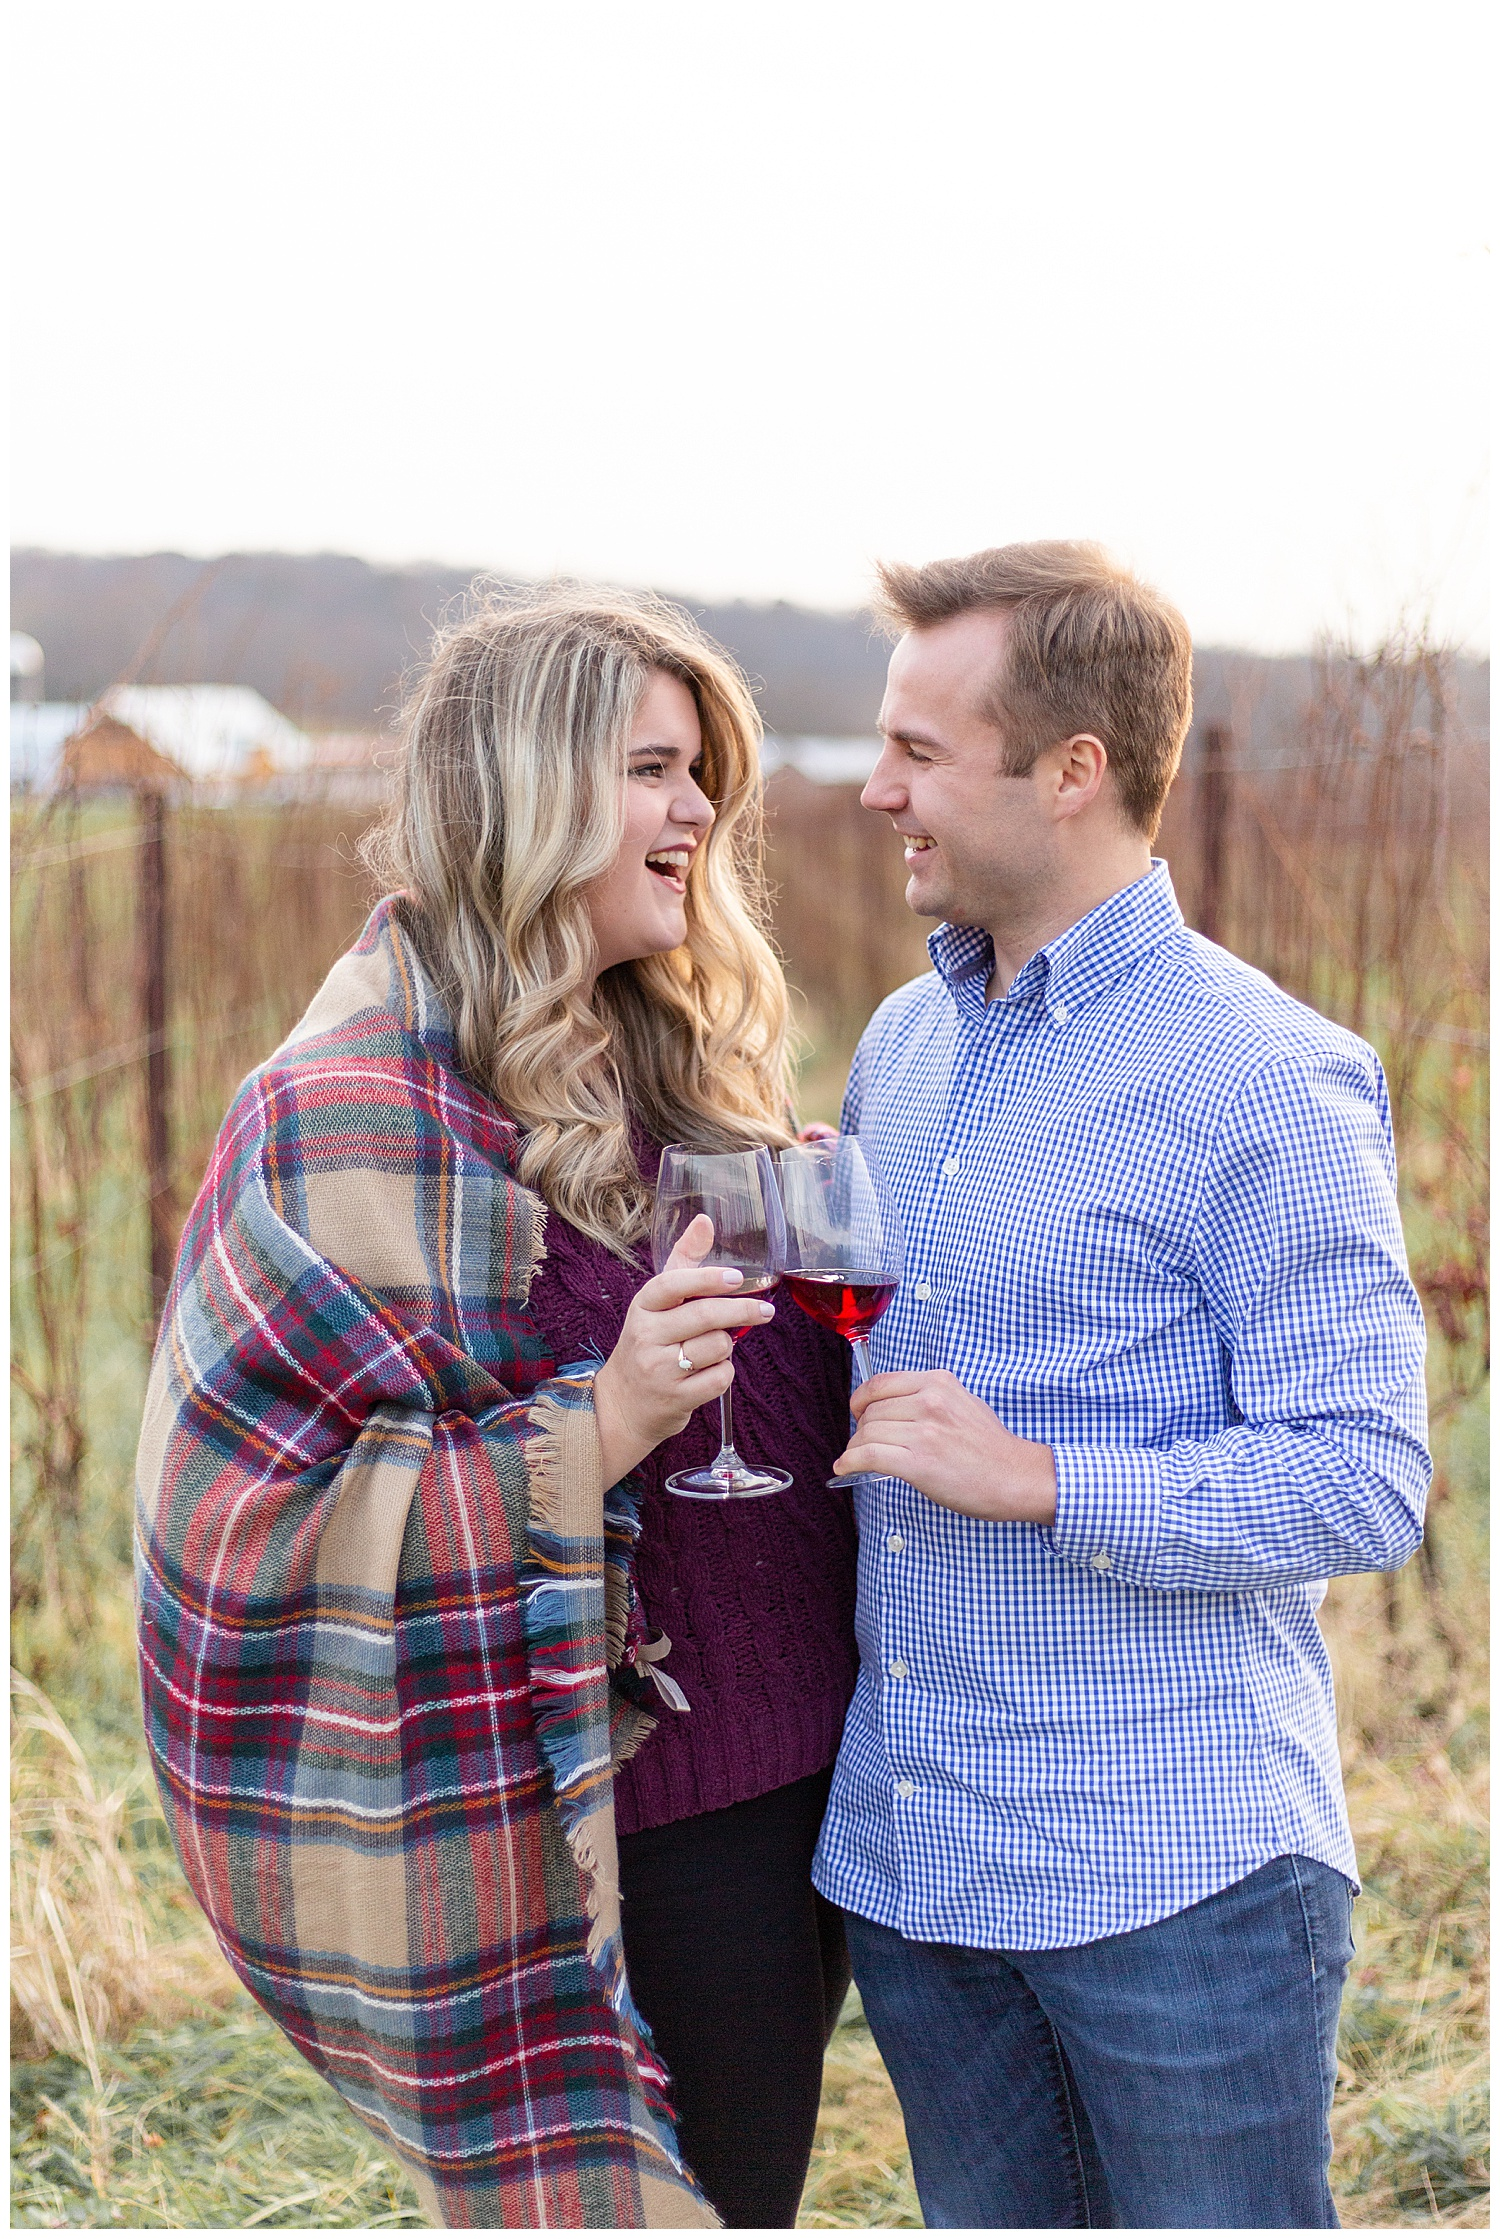 emily-belson-photography-black-ankle-winery-engagement-05.jpg